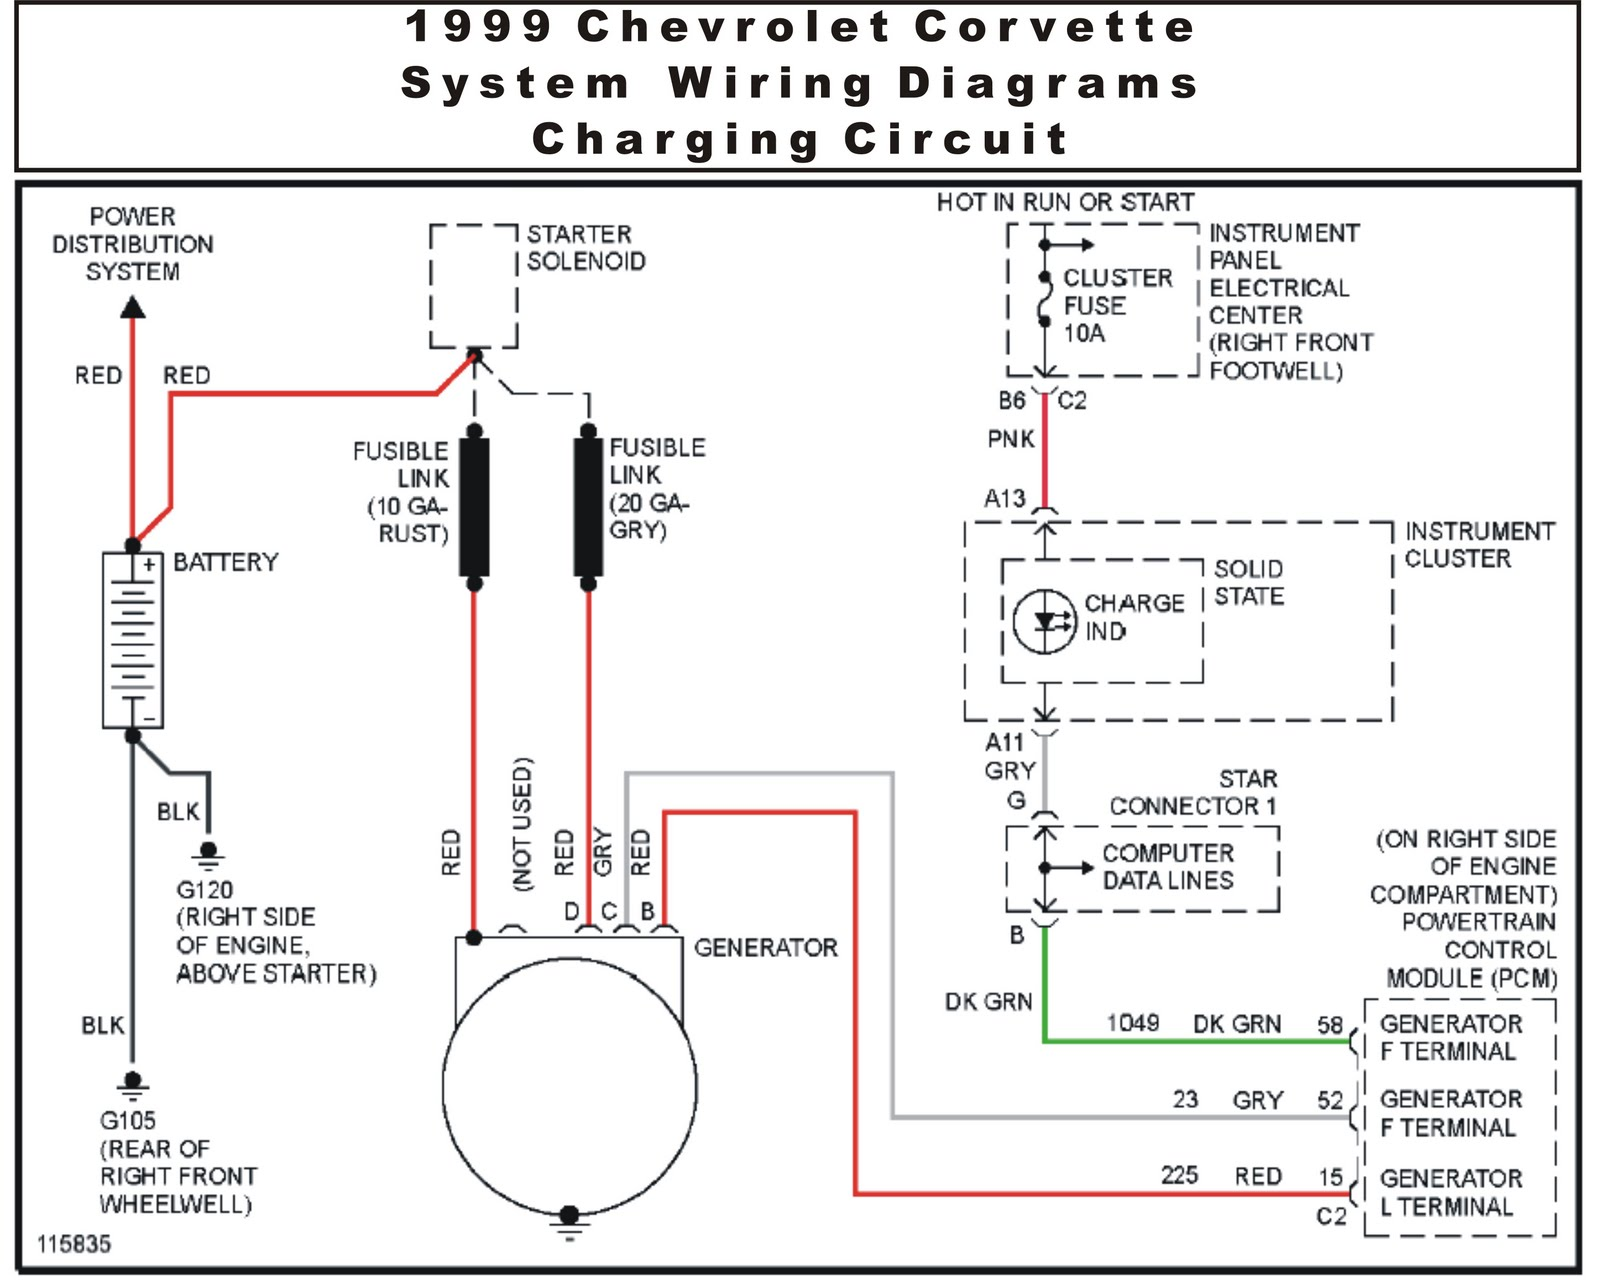 chevrolet starting system wiring diagram thousand collection of rh mmucc us 4 Wire Alternator Wiring Diagram Delco Alternator Wiring Diagram